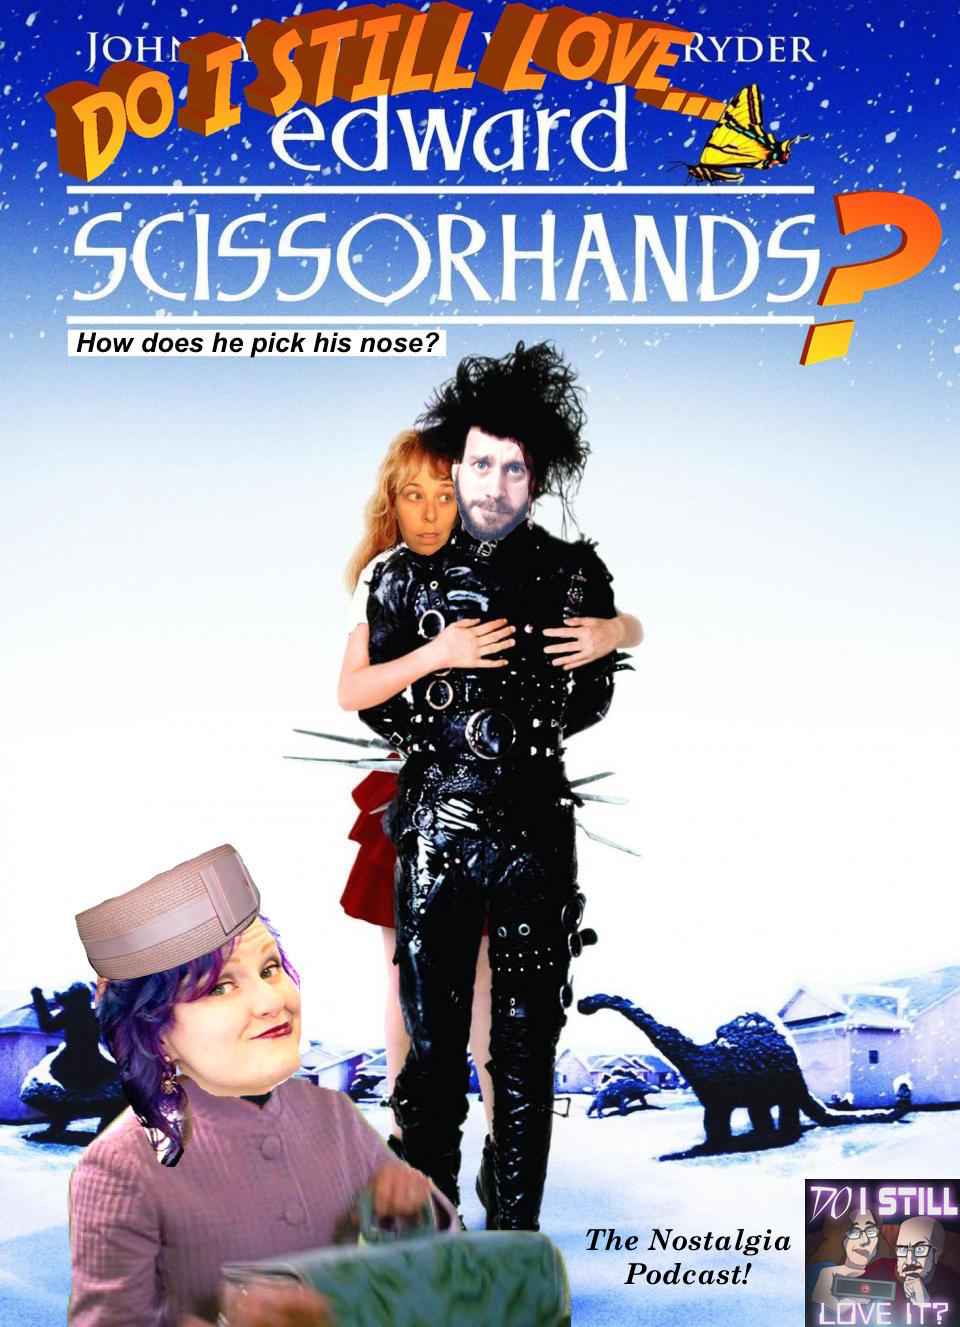 DISLI_Edward_Scissorhands